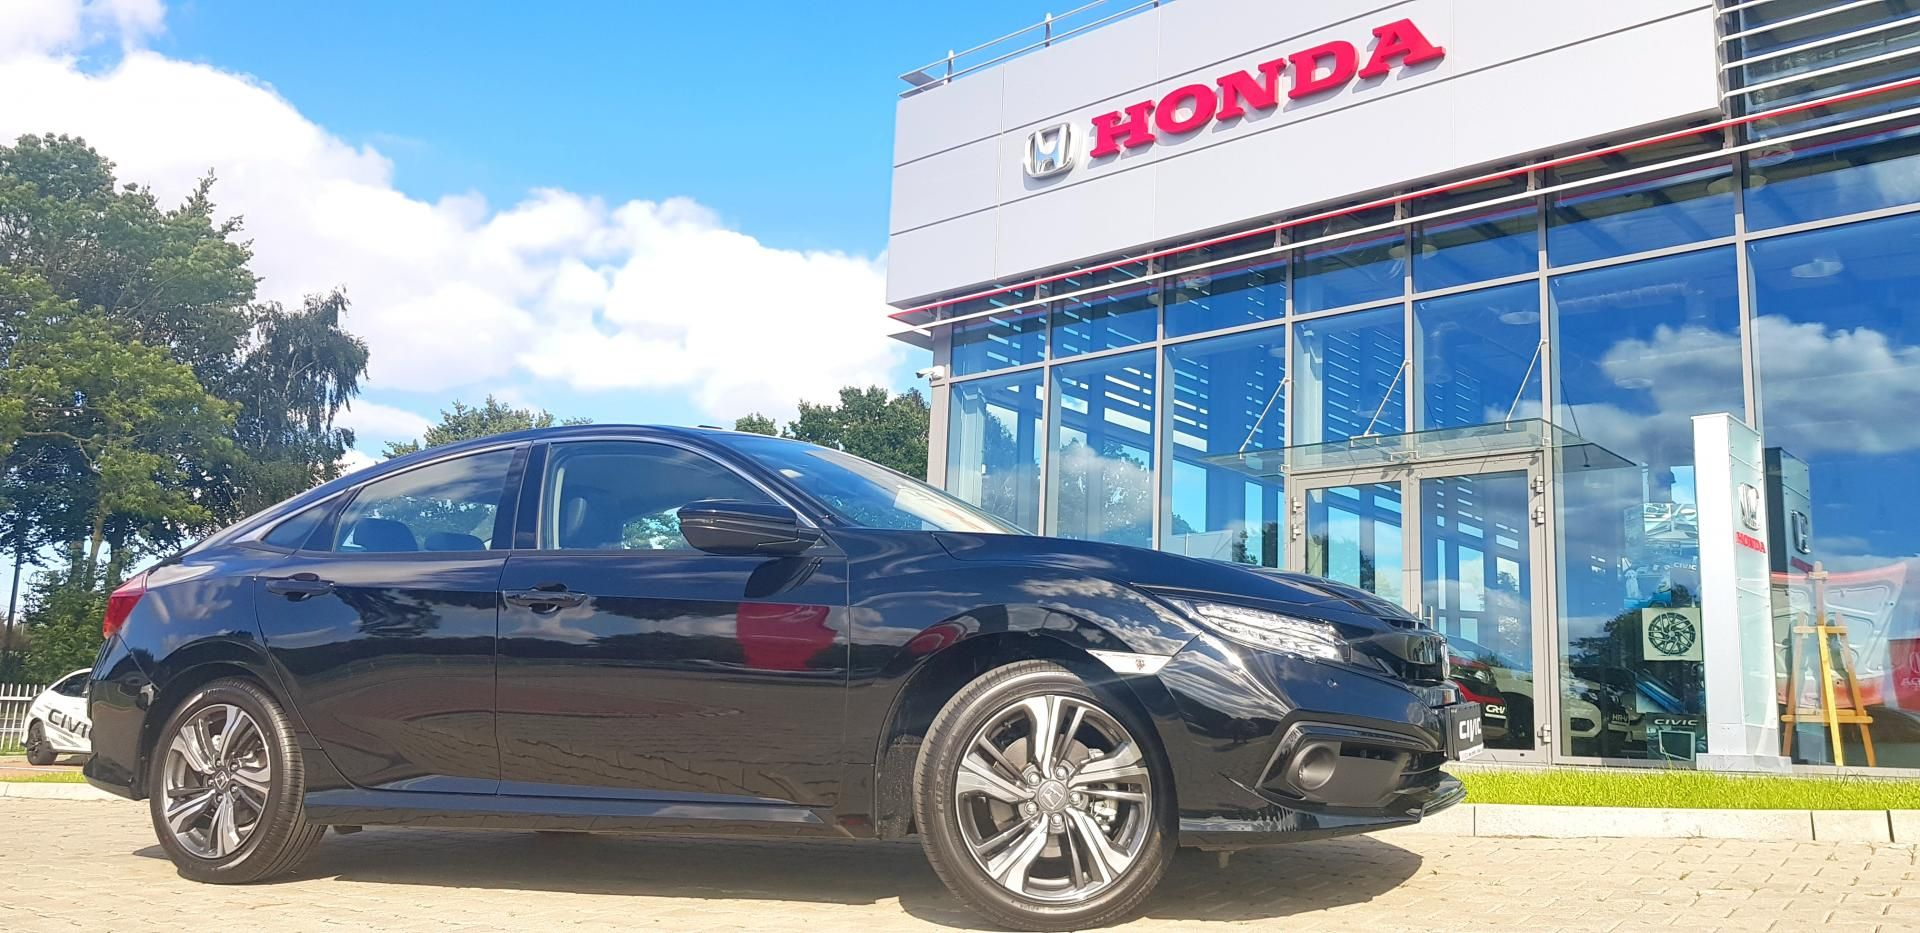 Honda Civic Sedan 1.5 Elegance CVT 2020  RABAT 12 000,-